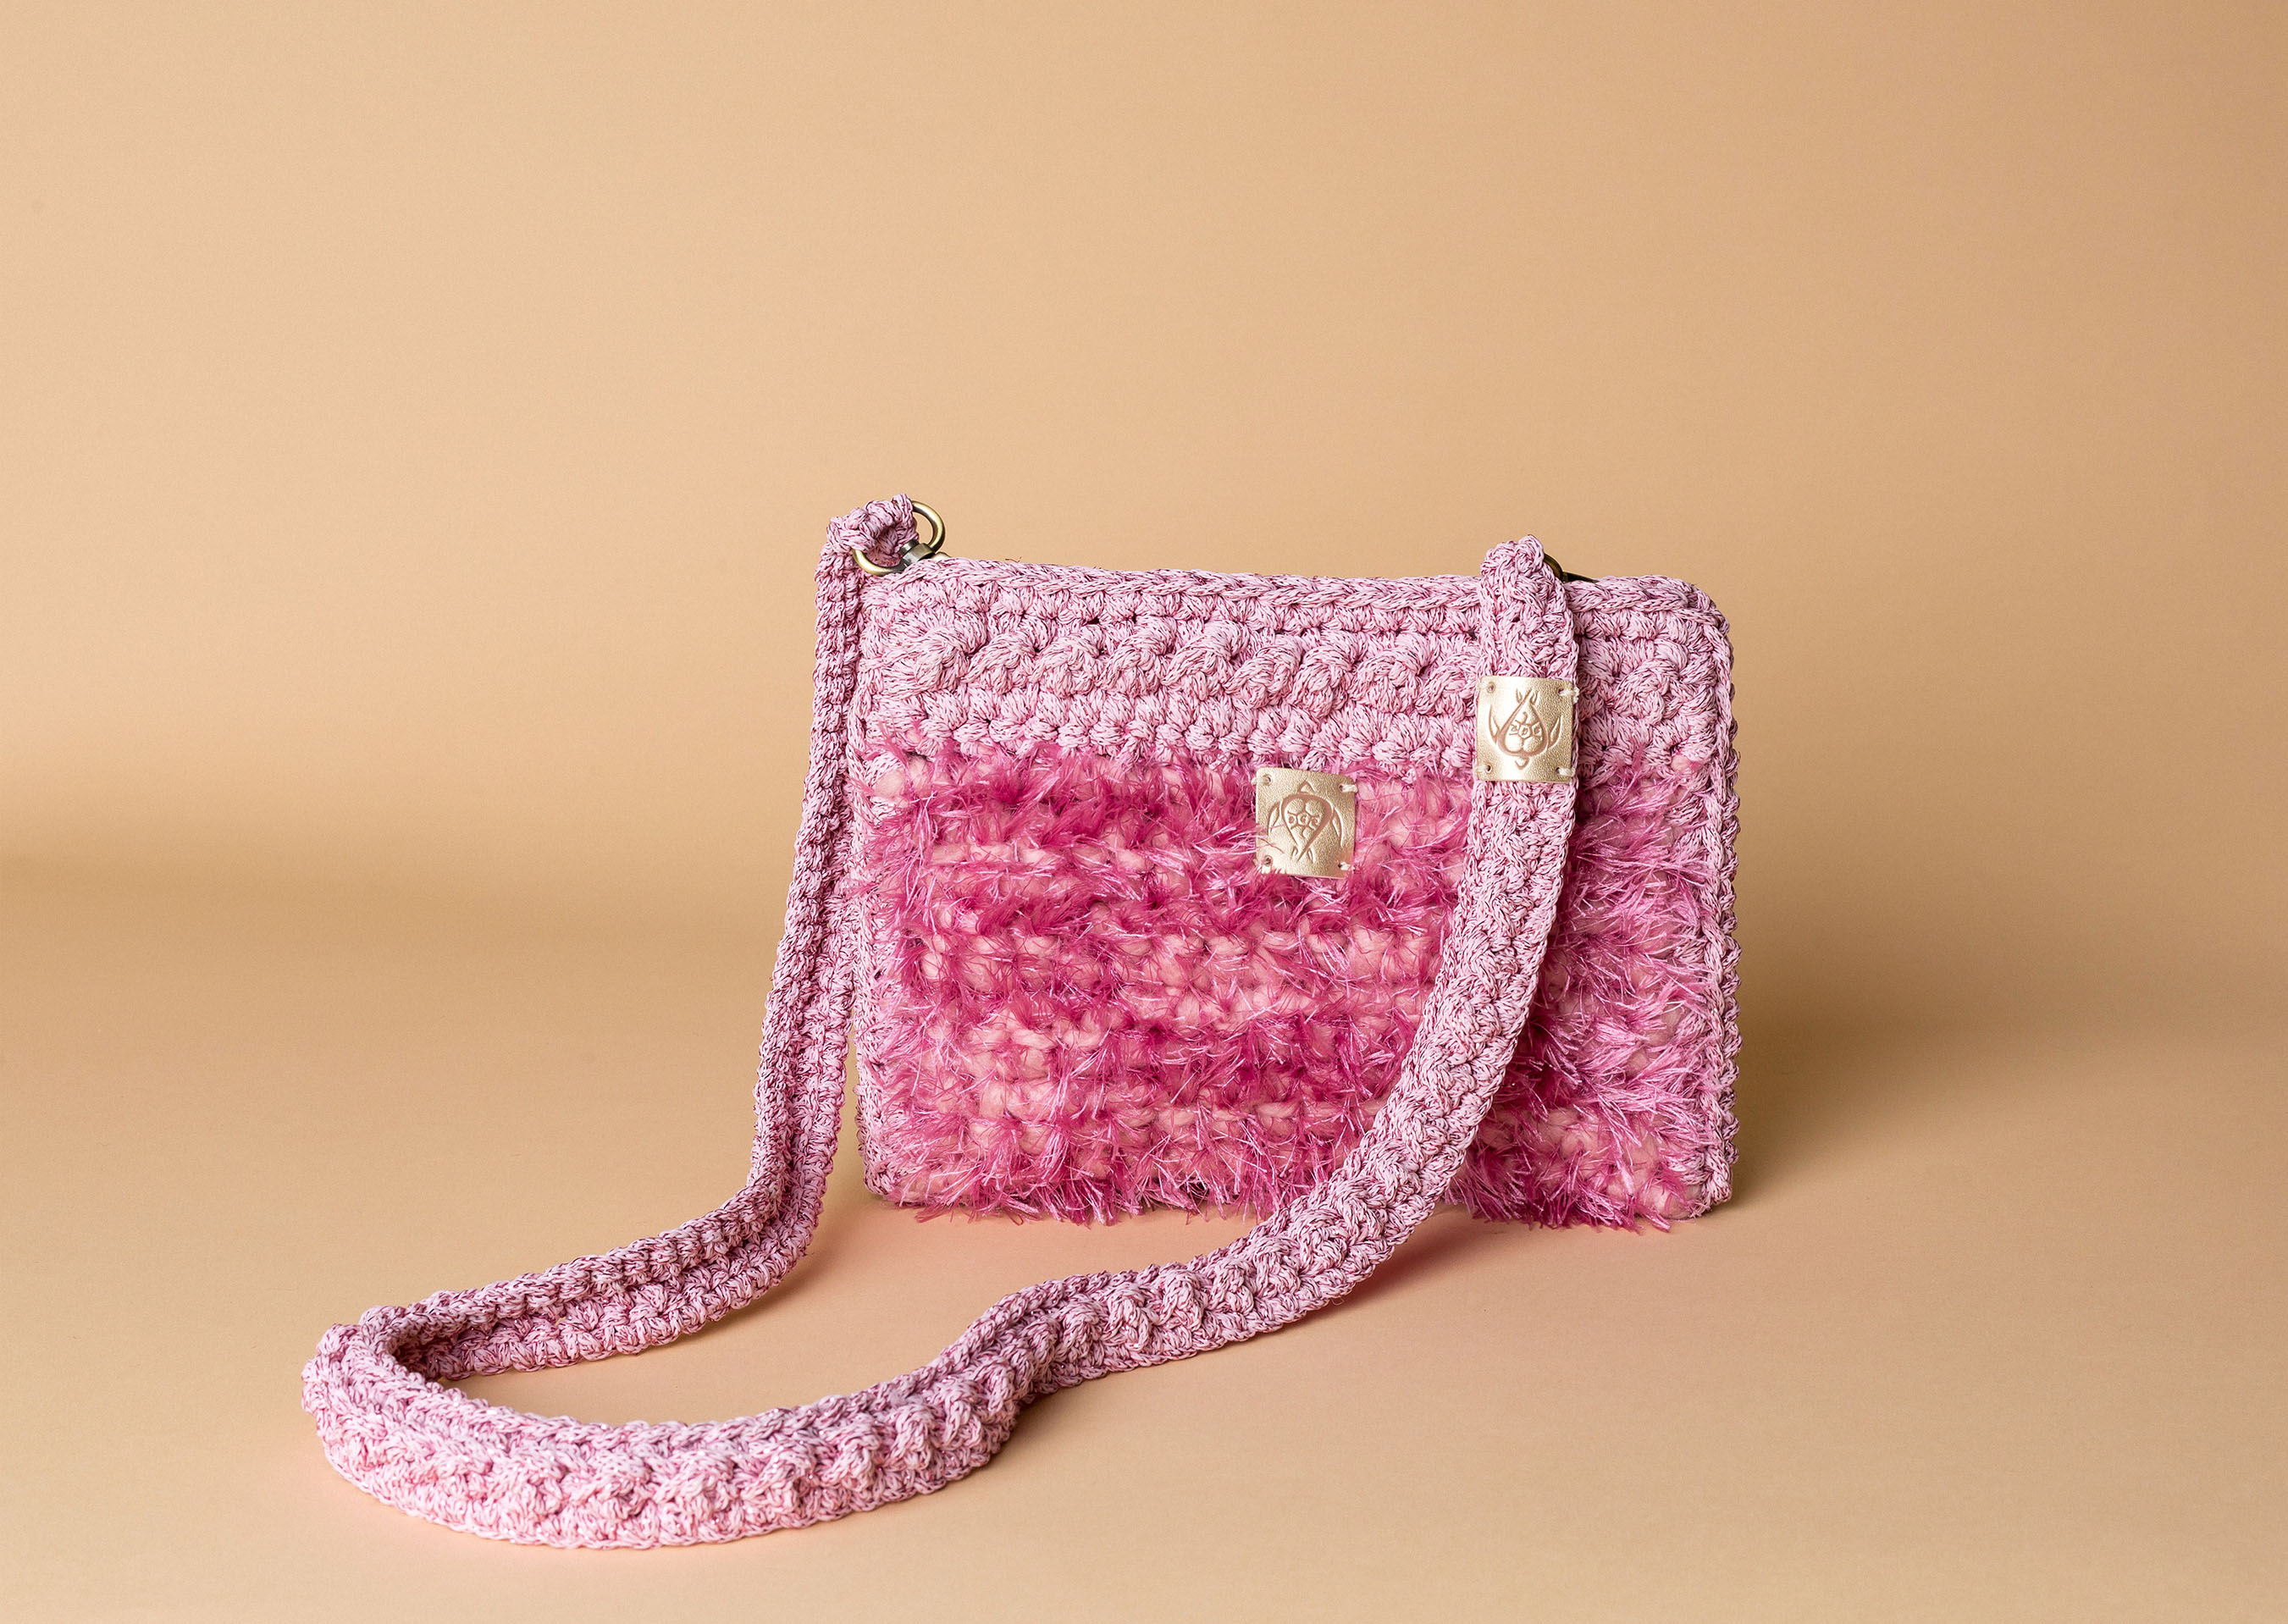 knitted bag petit in pink